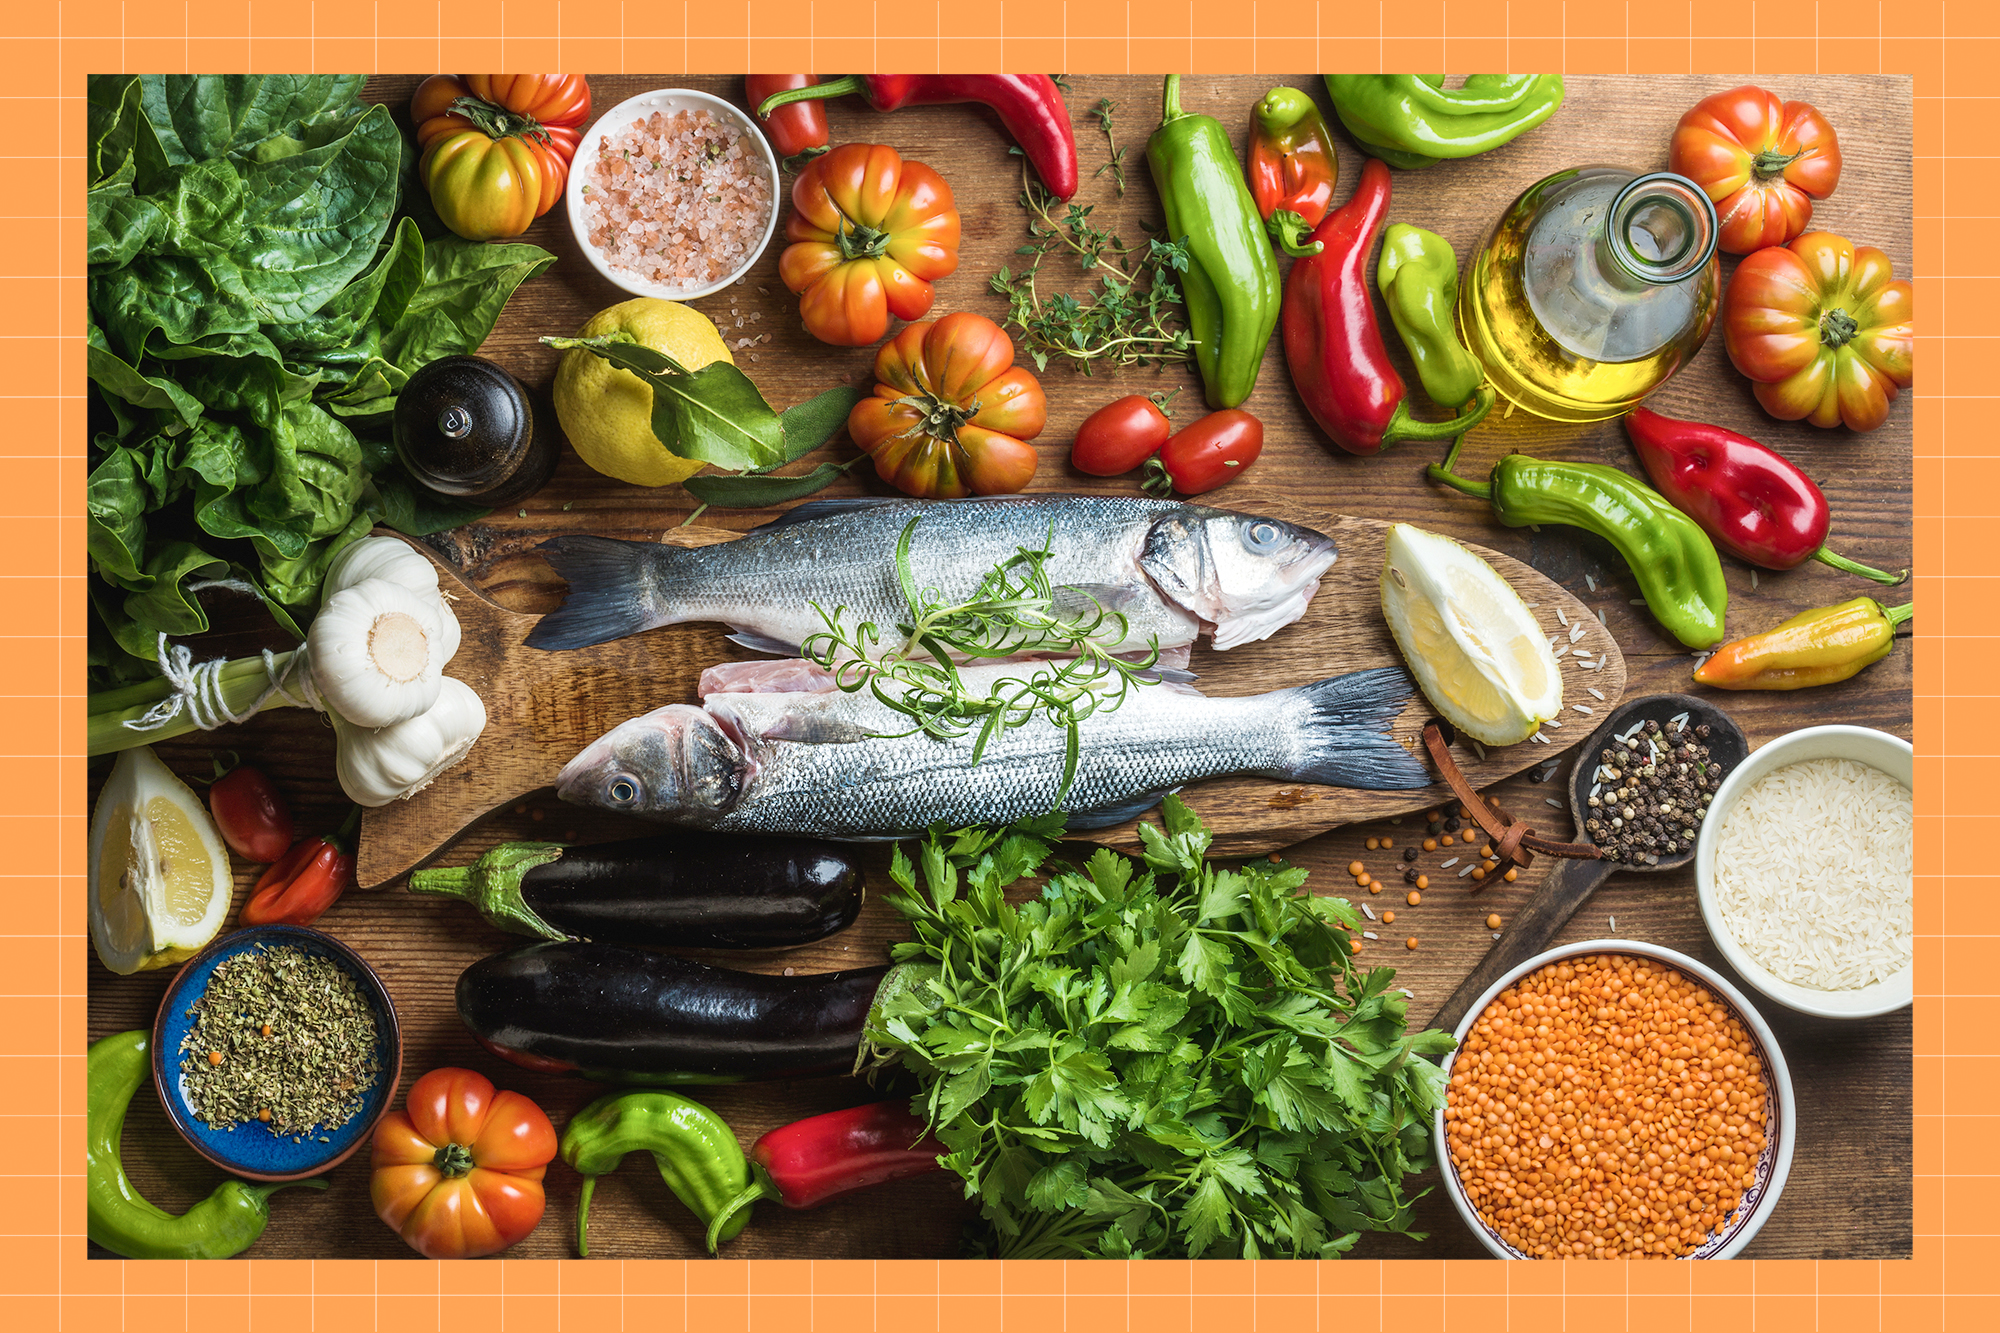 Raw uncooked seabass fish with vegetables, grains, herbs and spices on chopping board over rustic wooden background with a photo treatment in the background